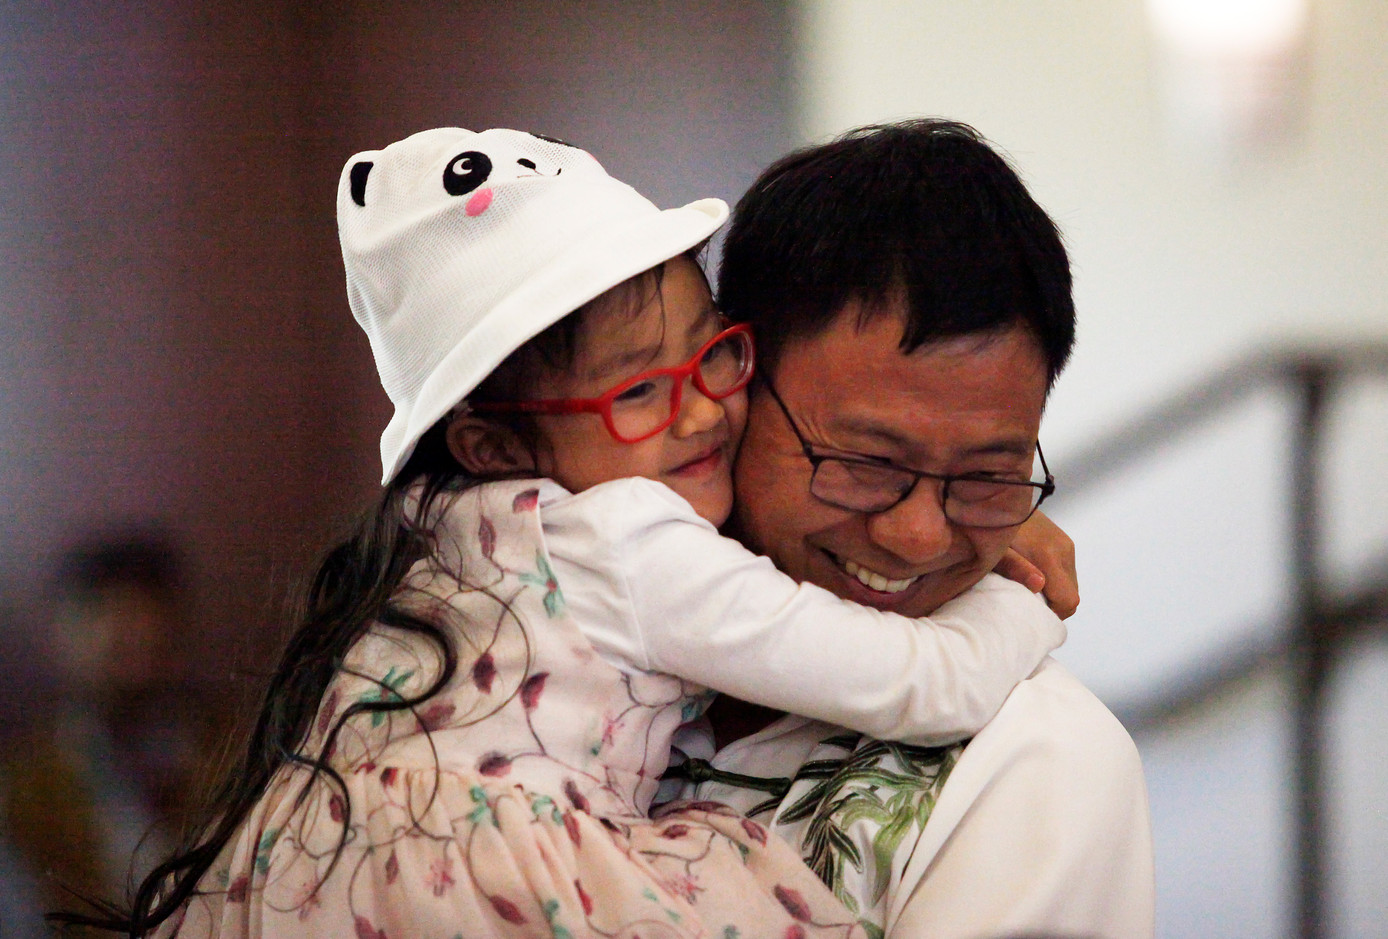 Esther Tang embraces her father, Zhong Liang Tang, after his performance of the Chinese martial art tai chi at World Refugee Day in Campbell, Santa Clara, on June 14.